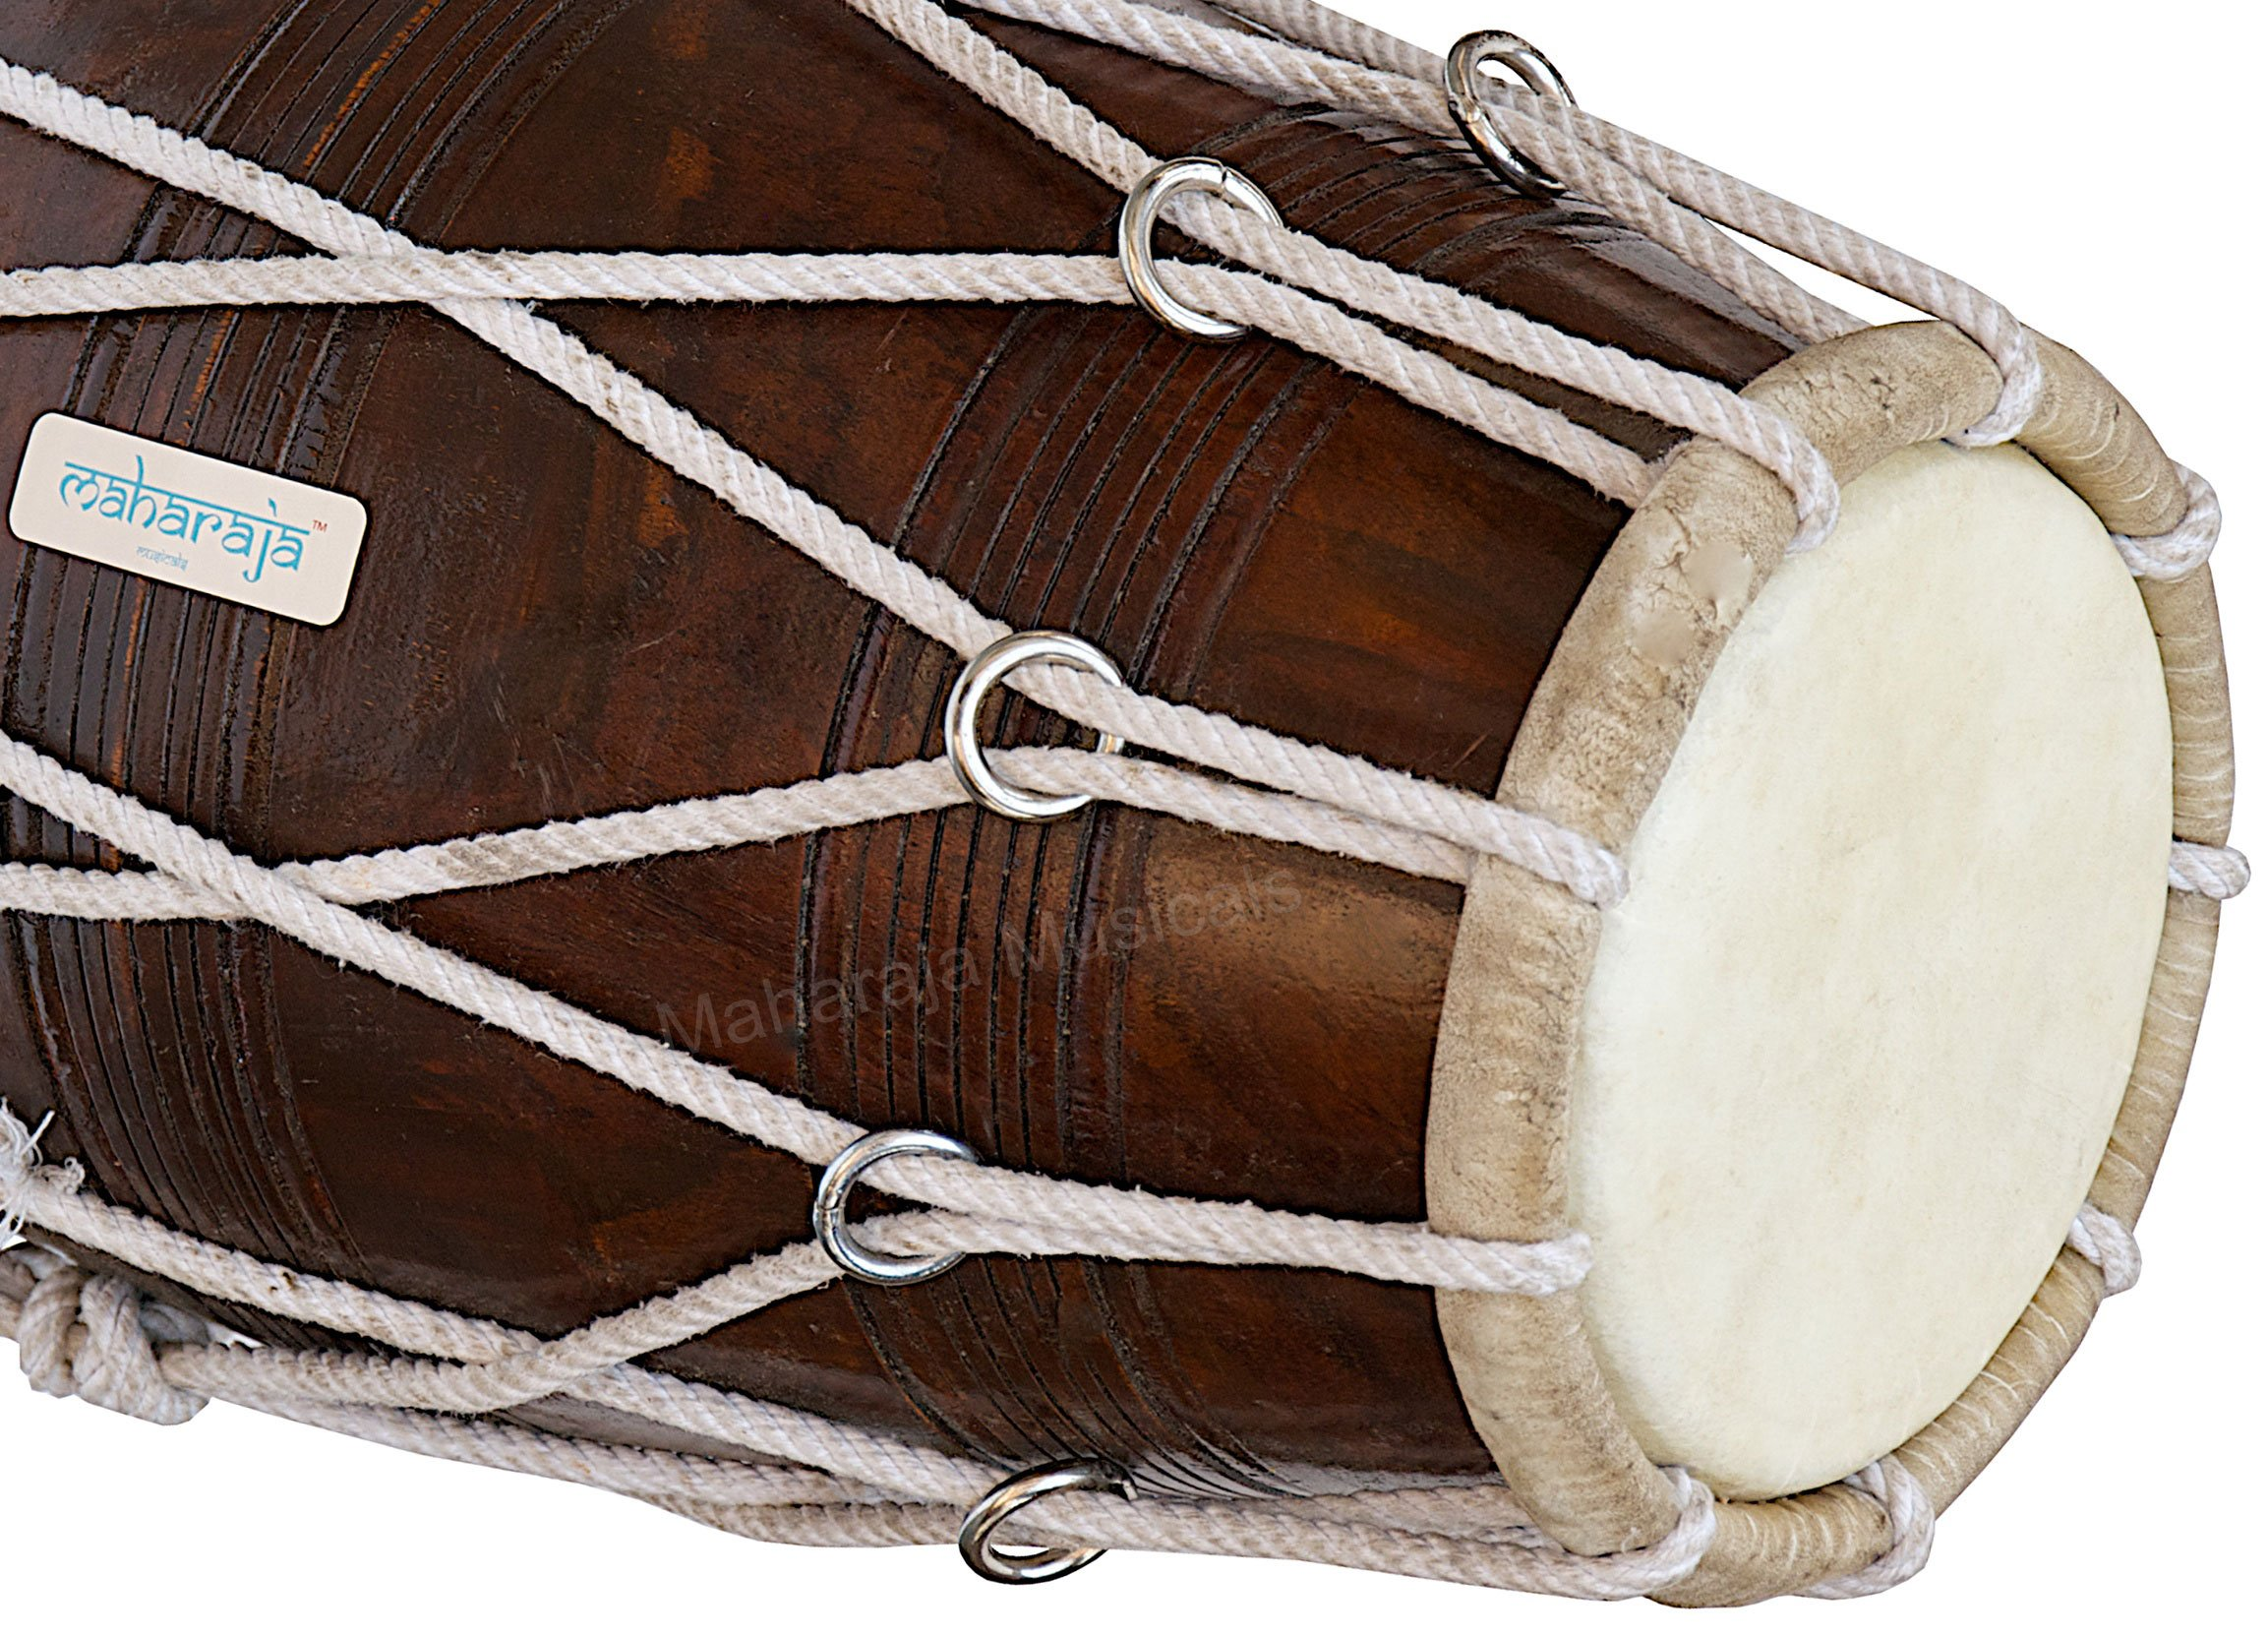 Special Dholak Drum by Maharaja Musicals, Professional Quality, Sheesham Wood, Padded Bag, Spanner, Dholki Musicals Instrument (PDI-BBC) by Maharaja Musicals (Image #5)